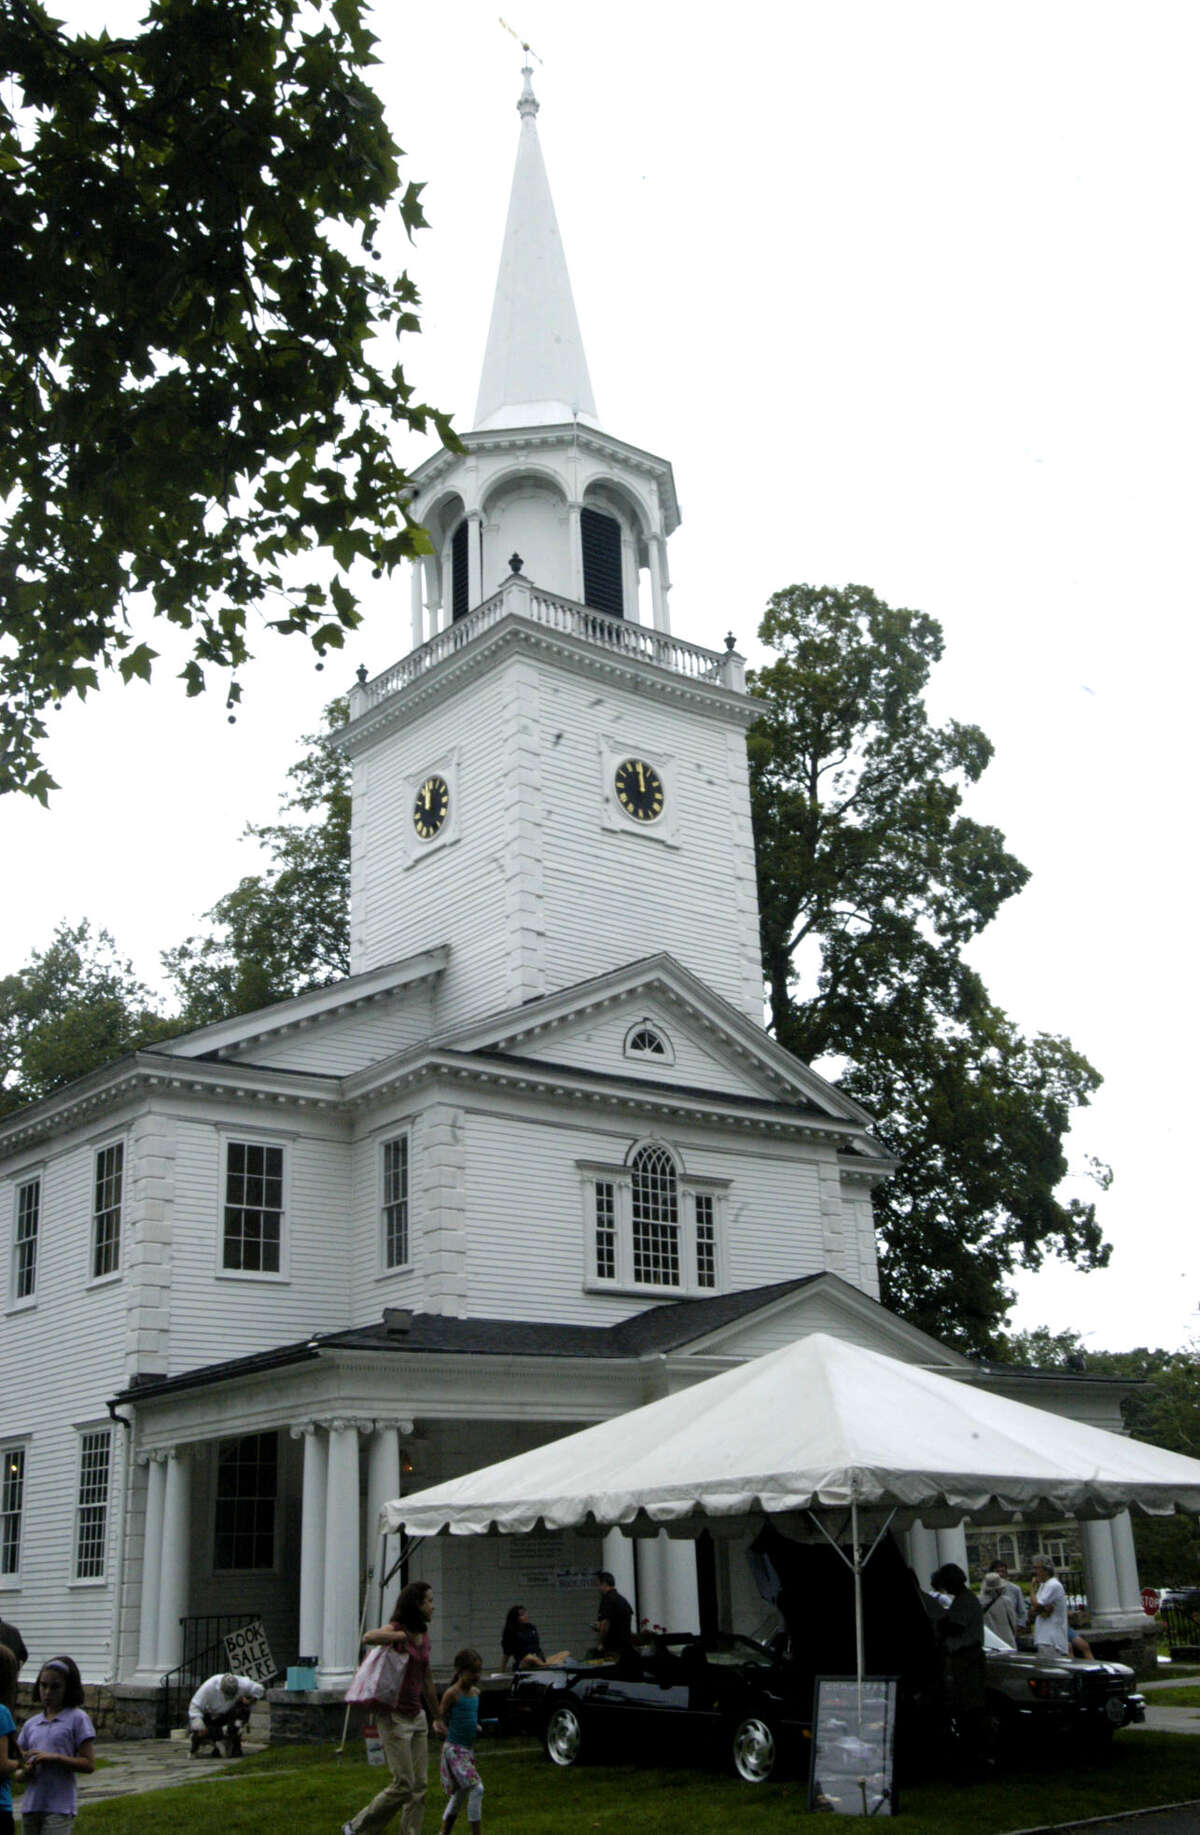 The church stands watch over the proceedings July 13, 2013 during the Washington Congregational Church's annual Green Fair.